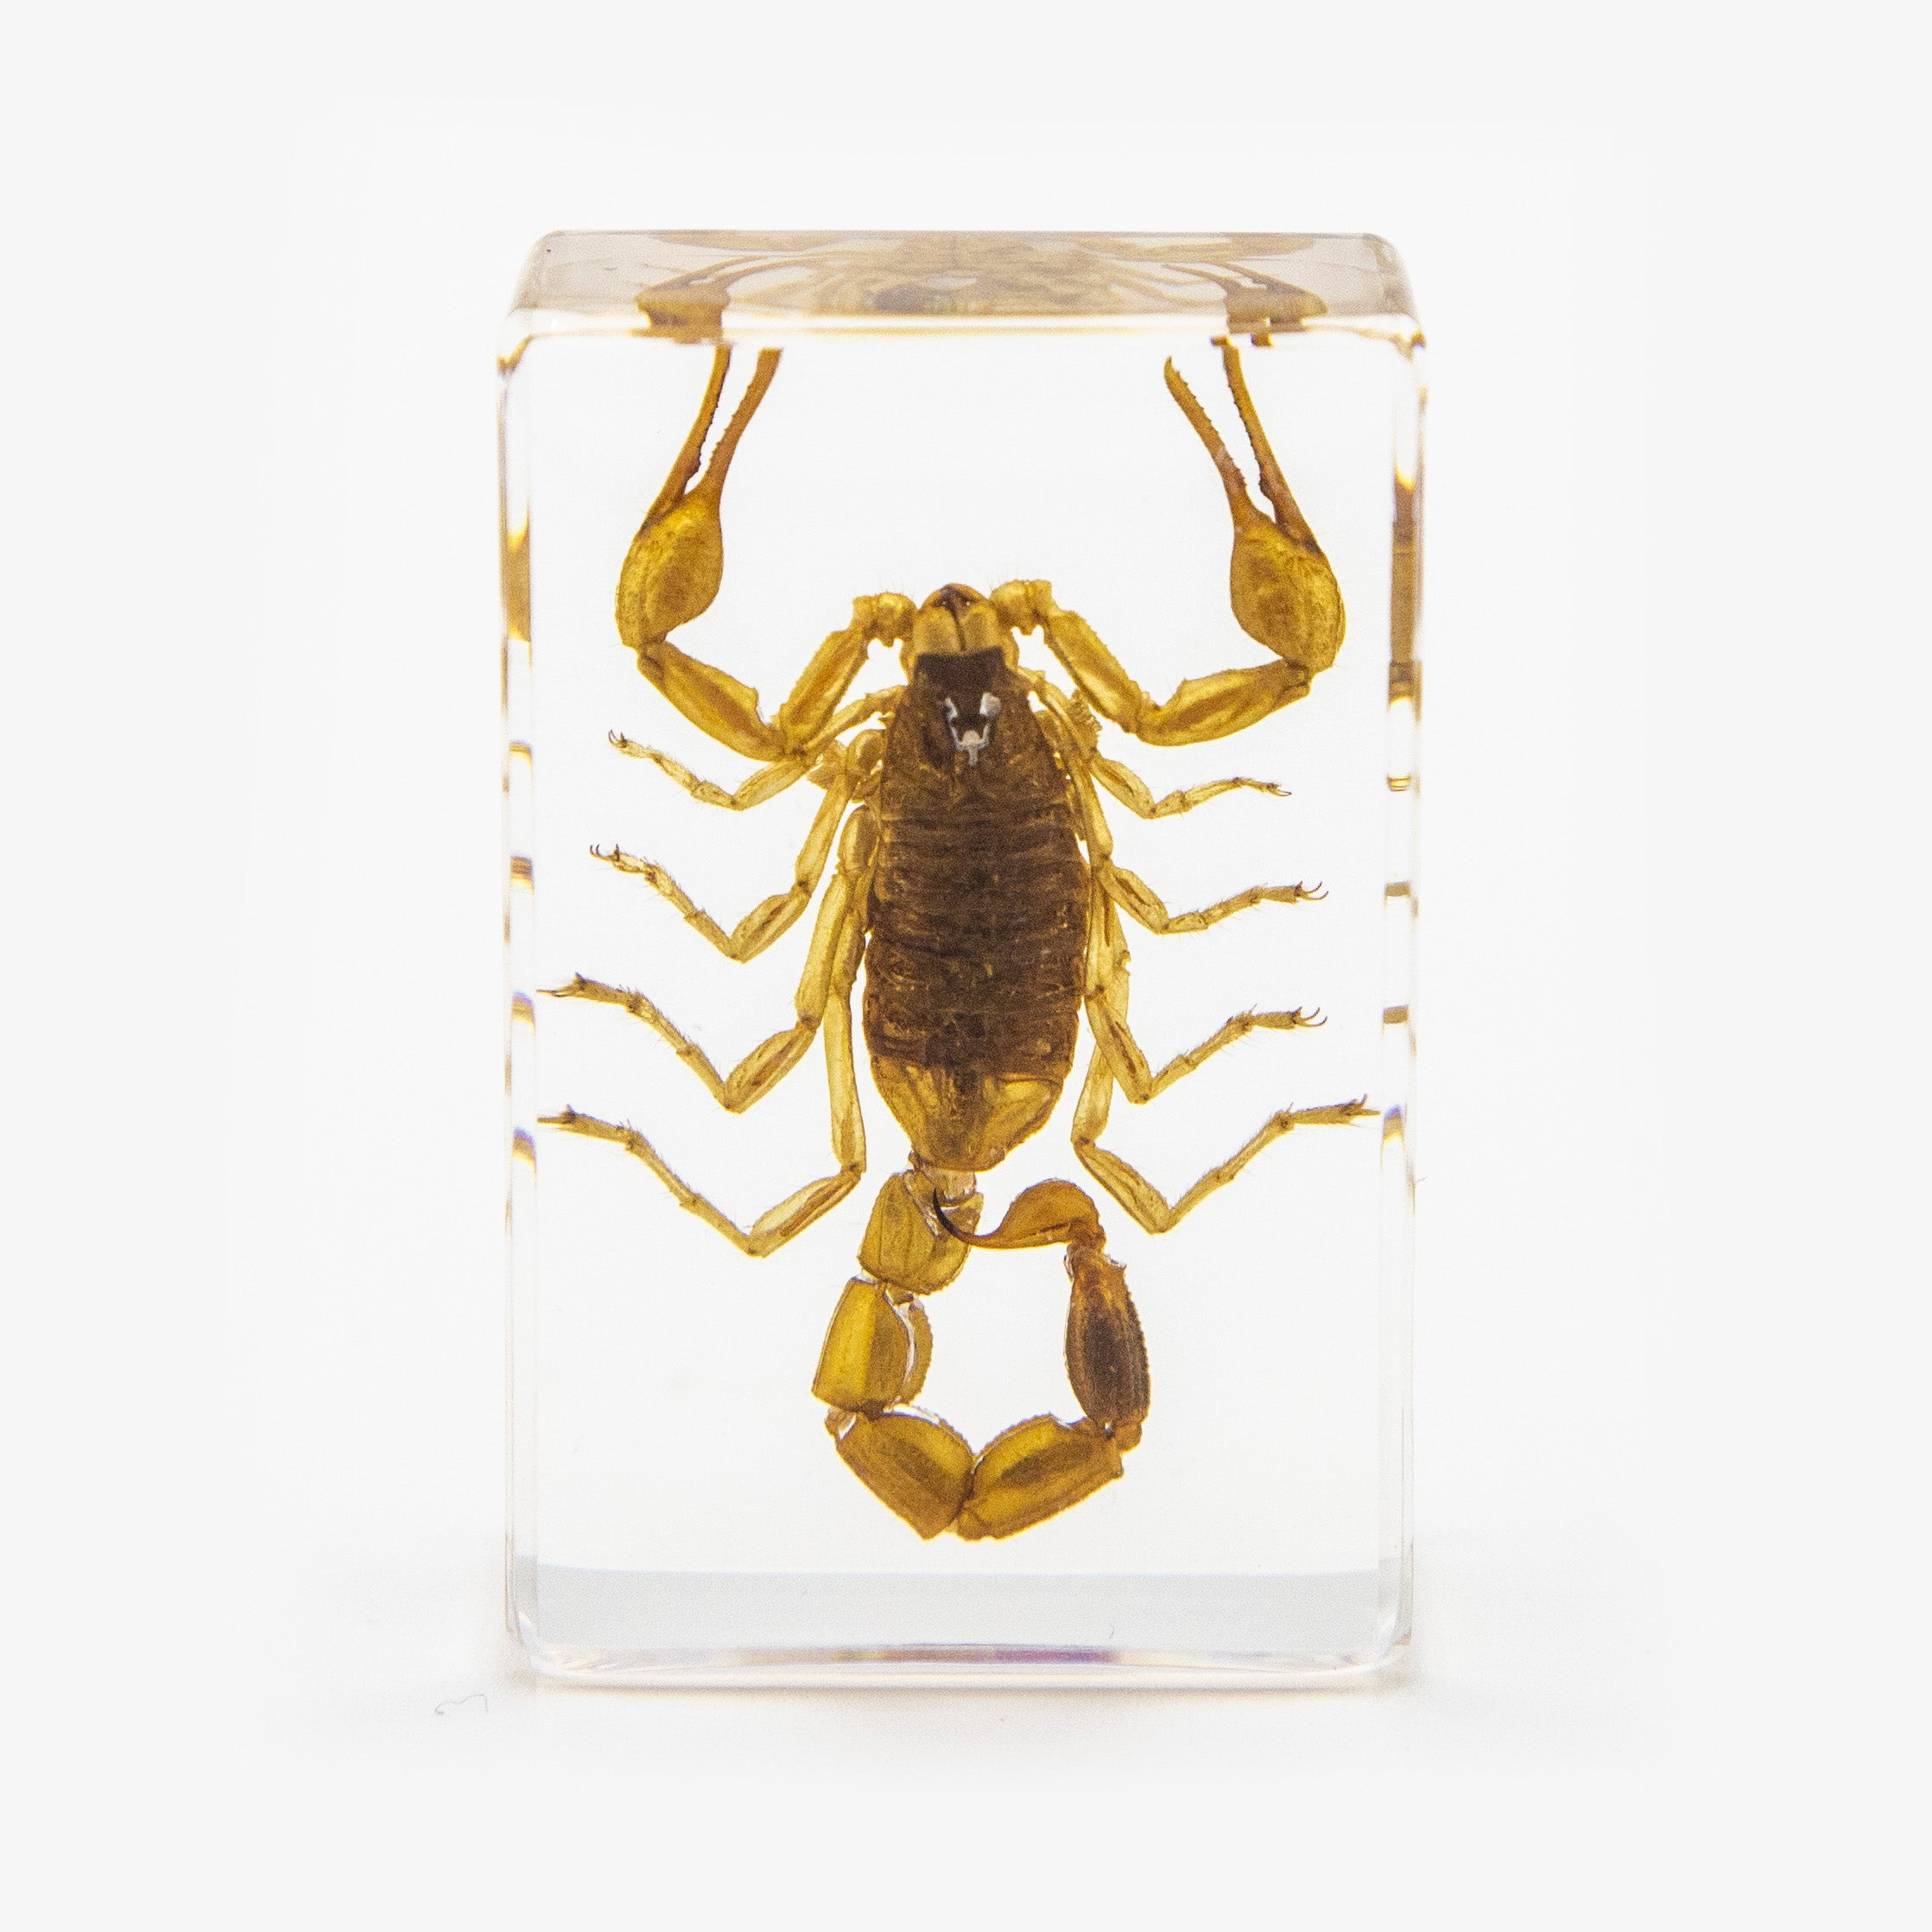 Golden Scorpion Resin Paperweight (Small)